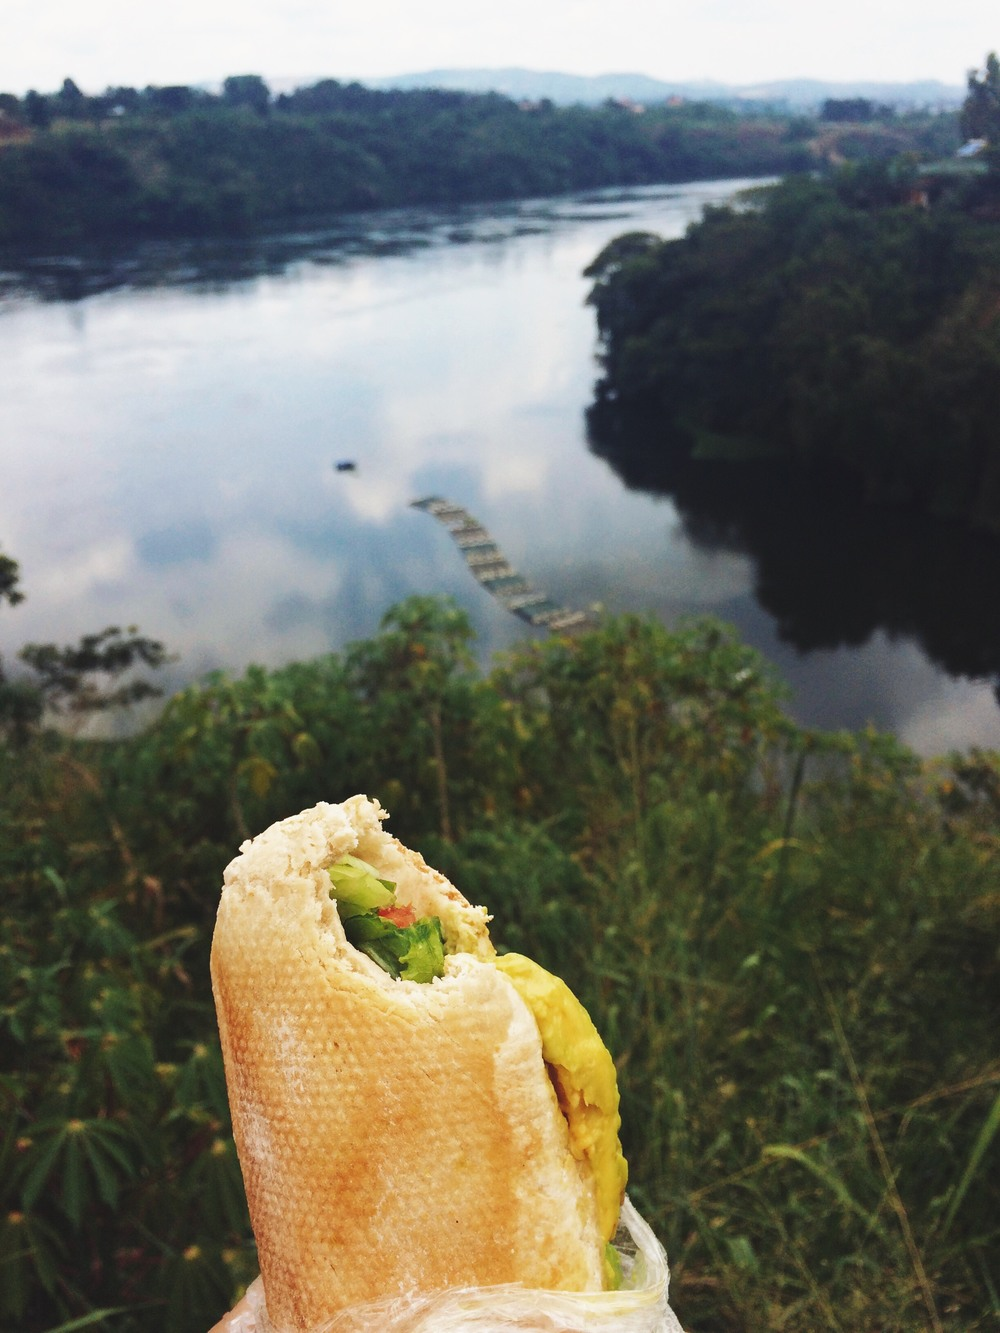 Picnic lunch overlooking the Nile River.